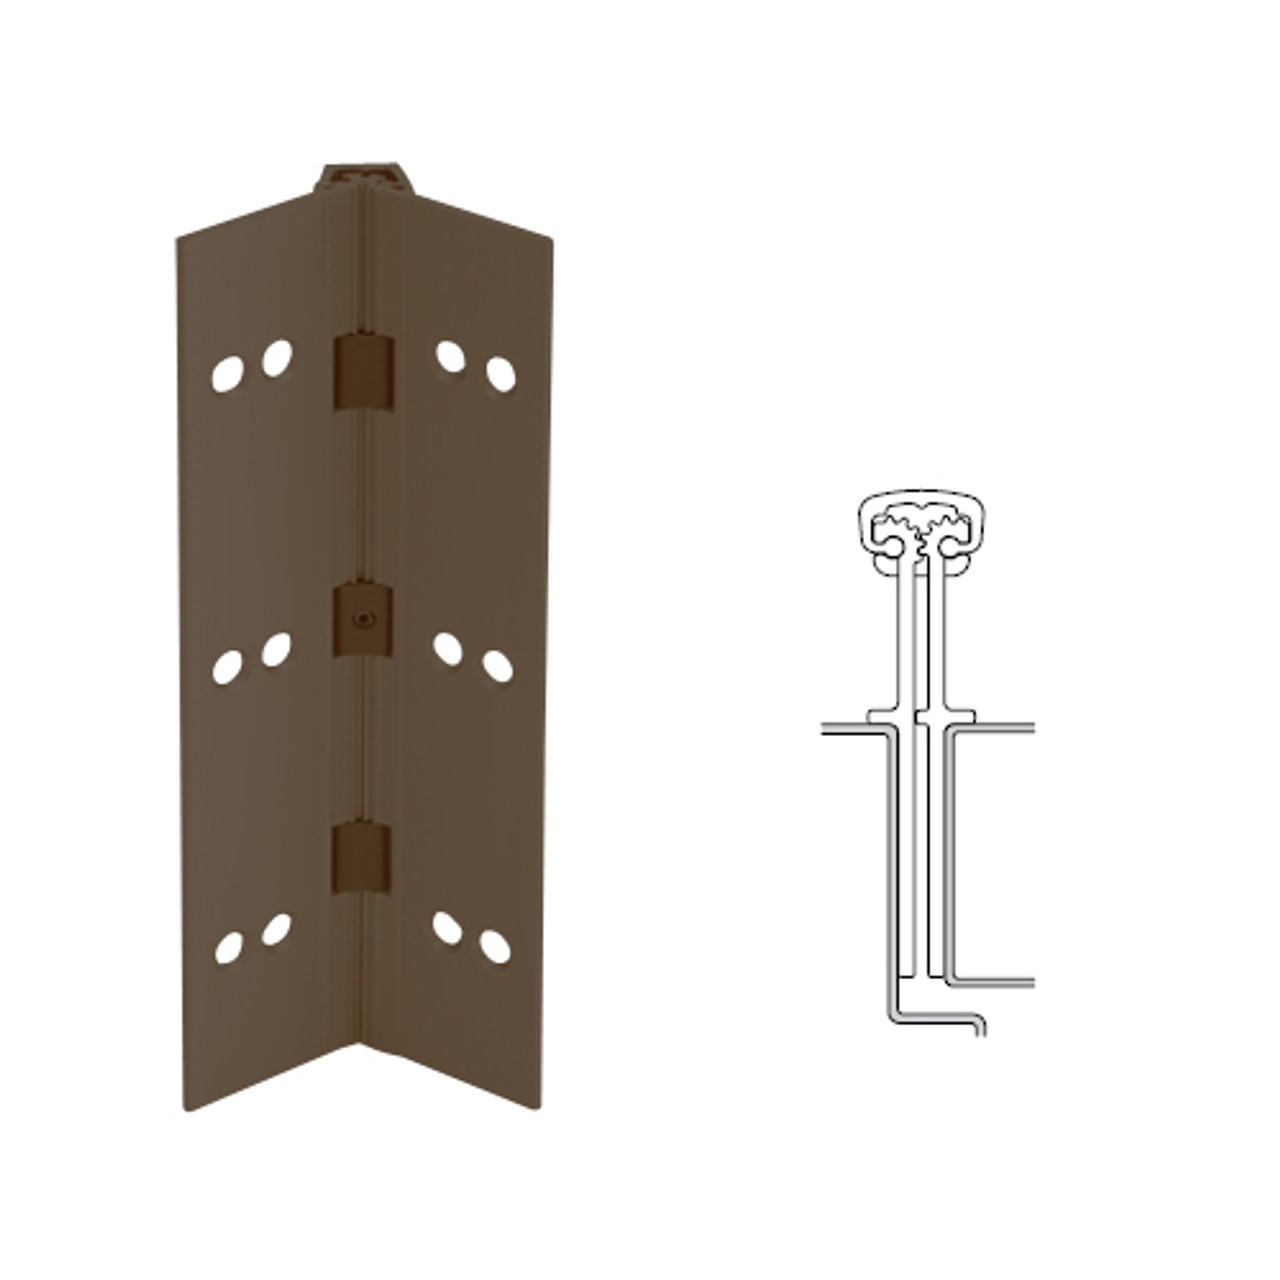 040XY-313AN-83-TFWD IVES Full Mortise Continuous Geared Hinges with Thread Forming Screws in Dark Bronze Anodized